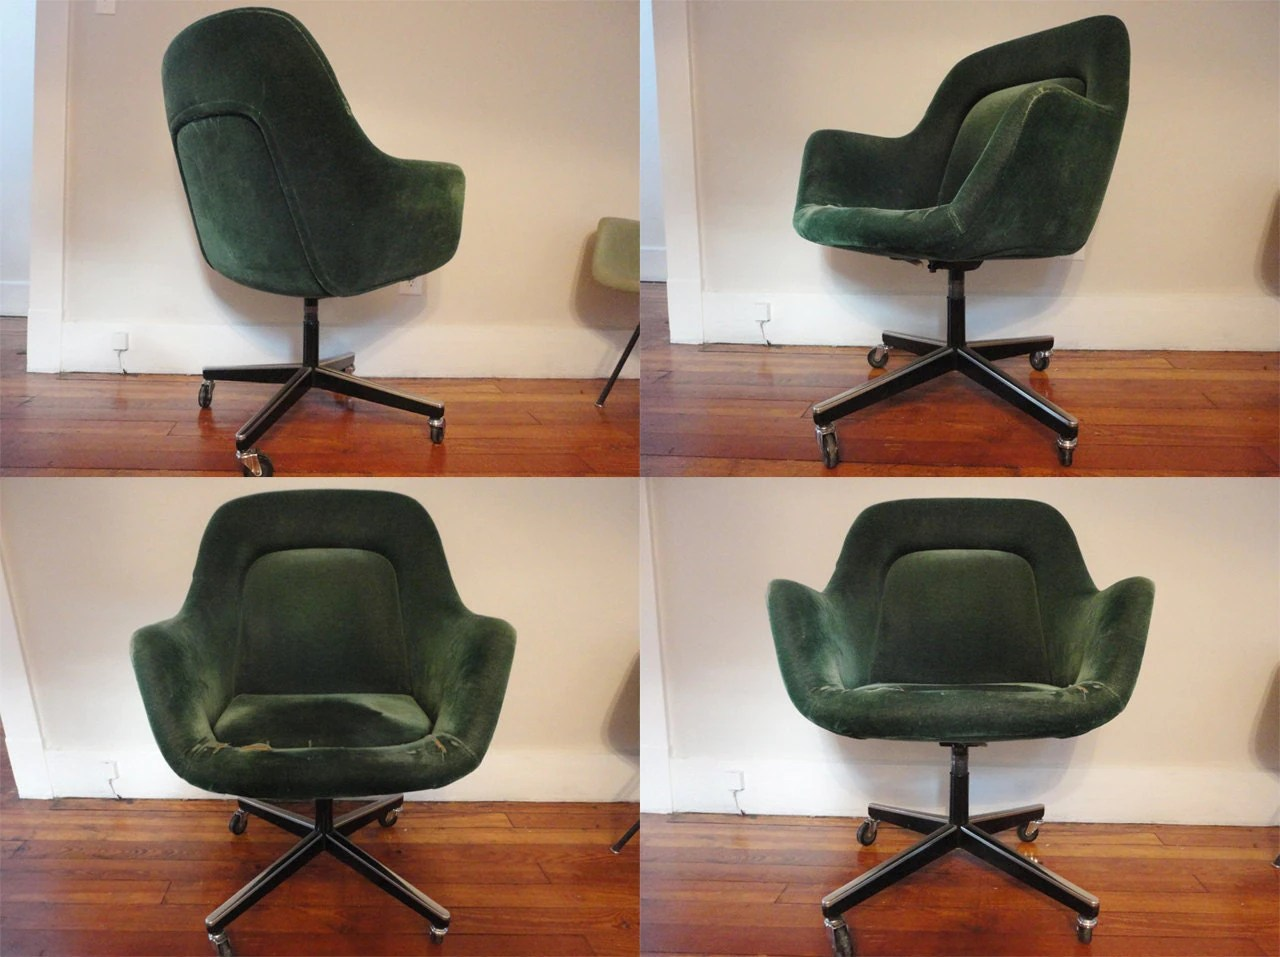 green velvet swivel chair cover rentals in nj rare knoll office saarinen mid century mad men arm